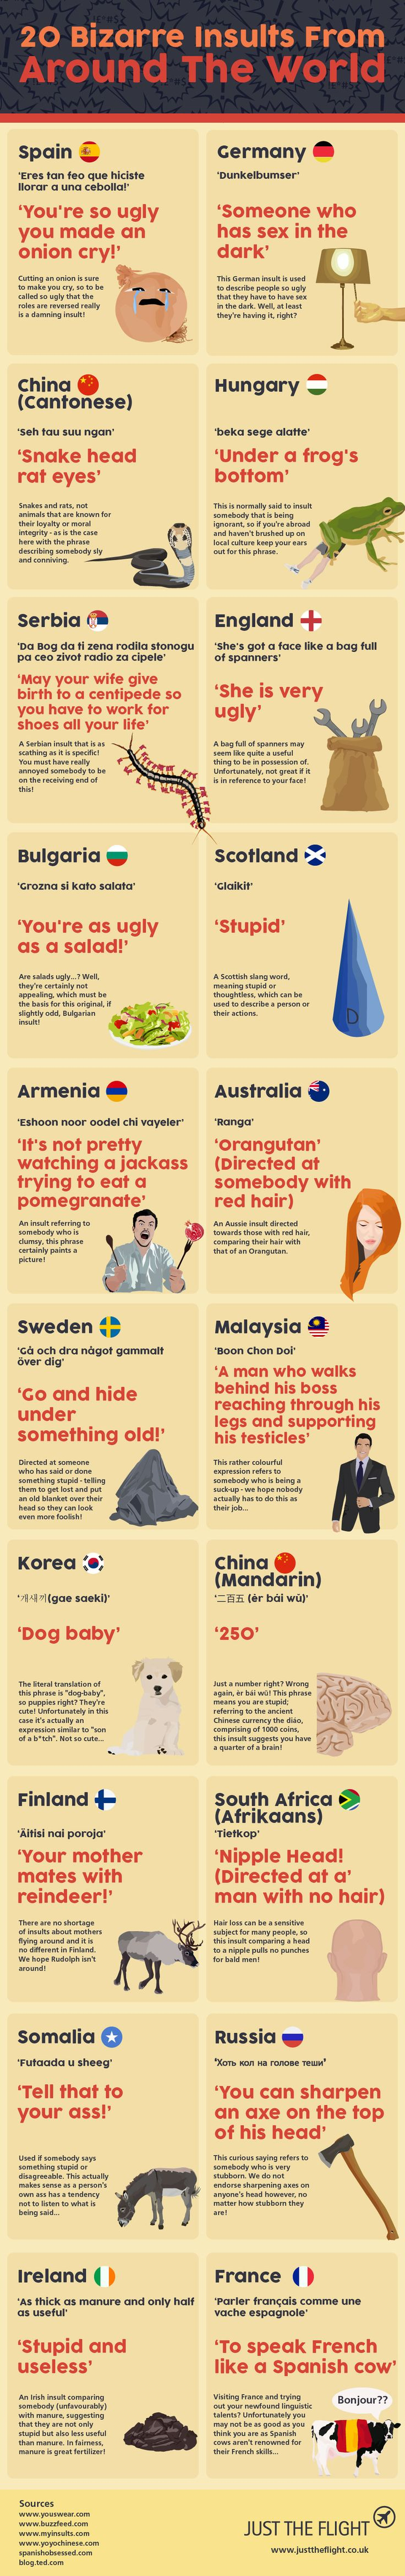 20 Bizarre Insults From Around The World